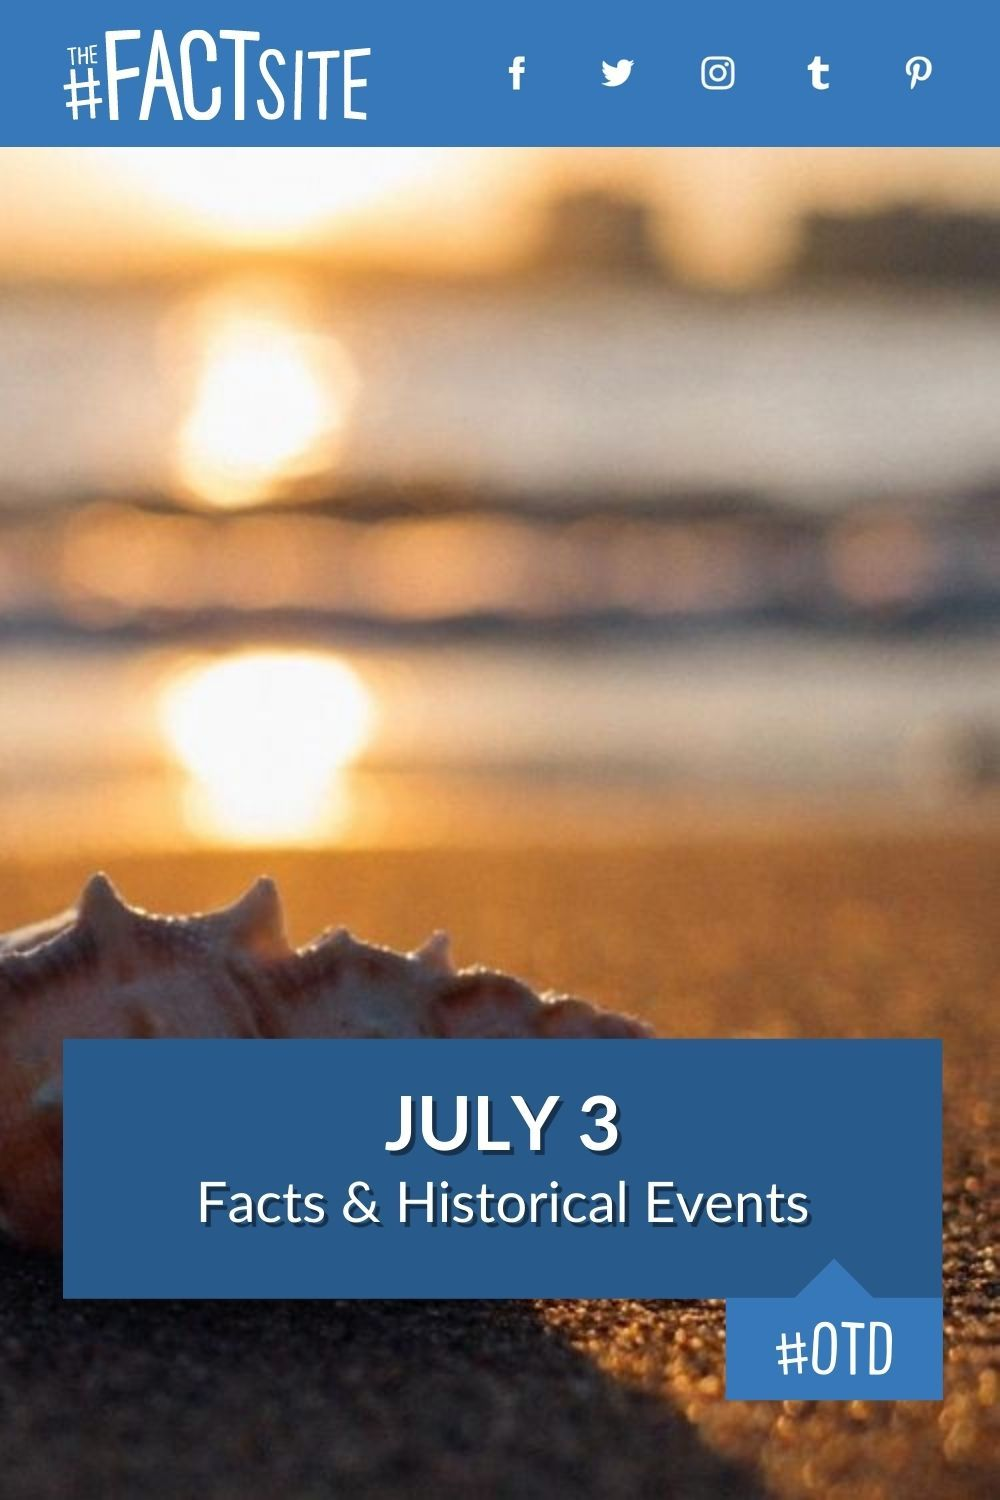 Facts & Historic Events That Happened on July 3